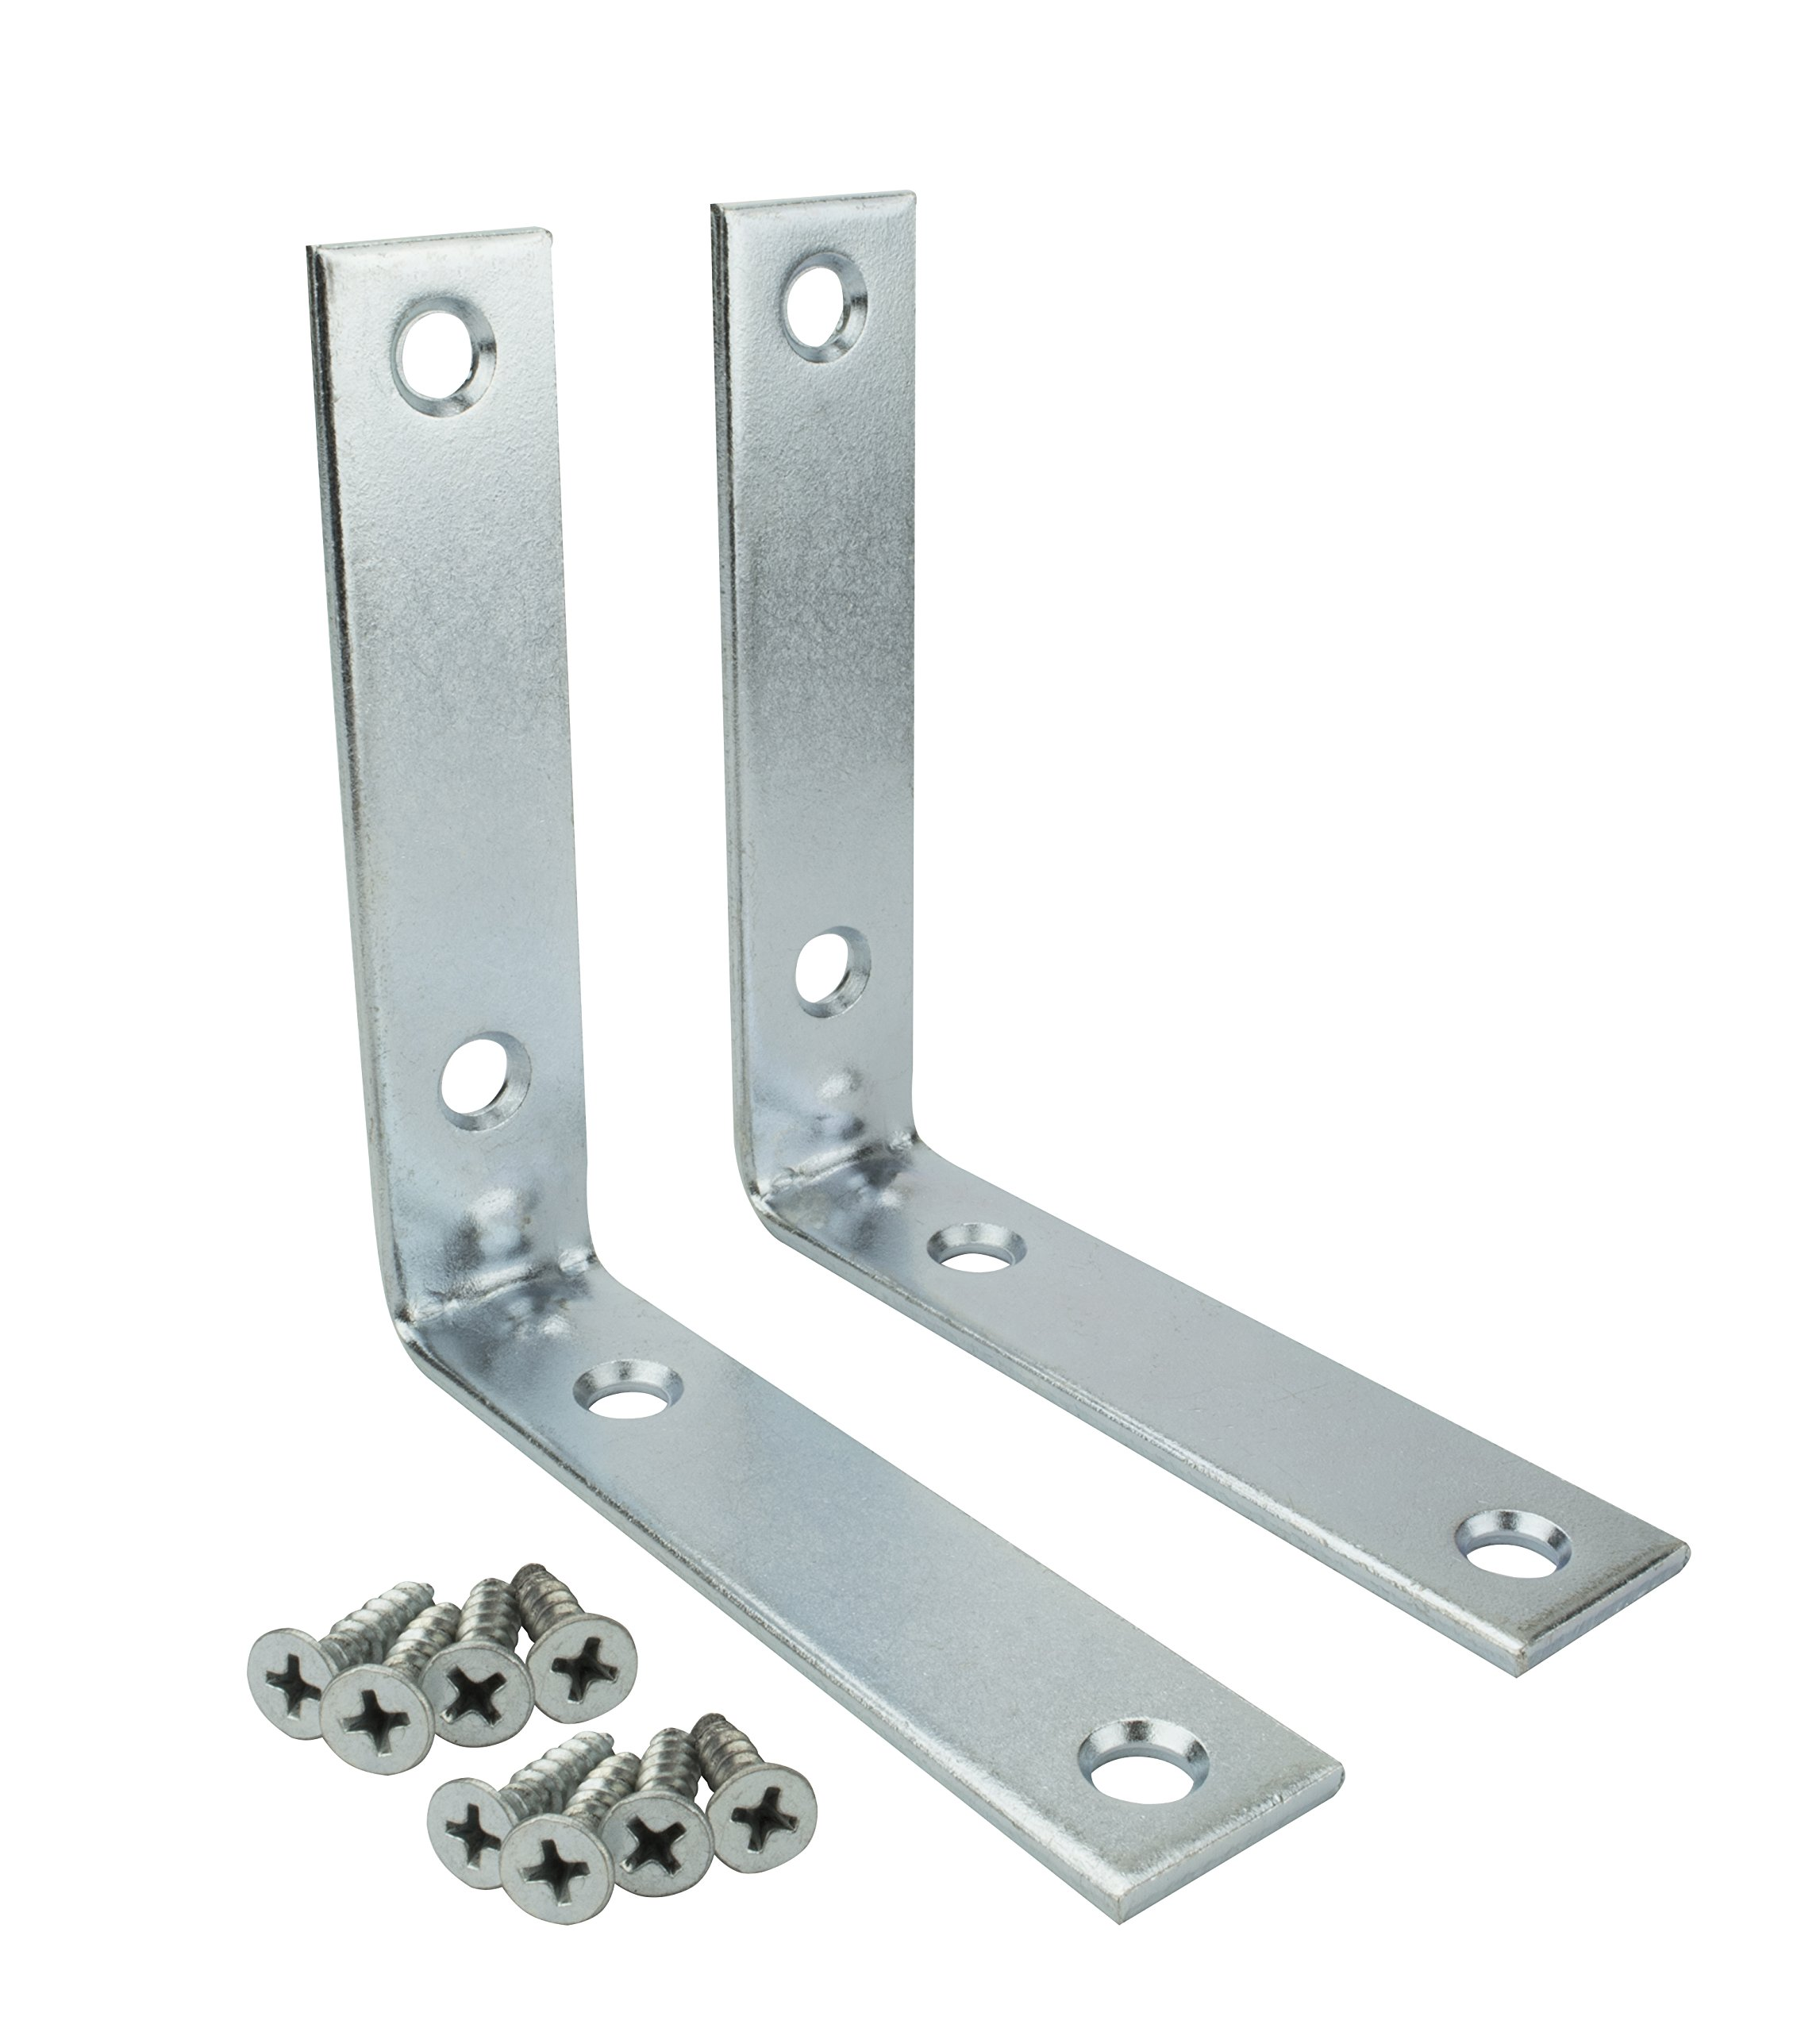 Specialty Hardware Corner Brace 4 inch Zinc Plated 48pcs